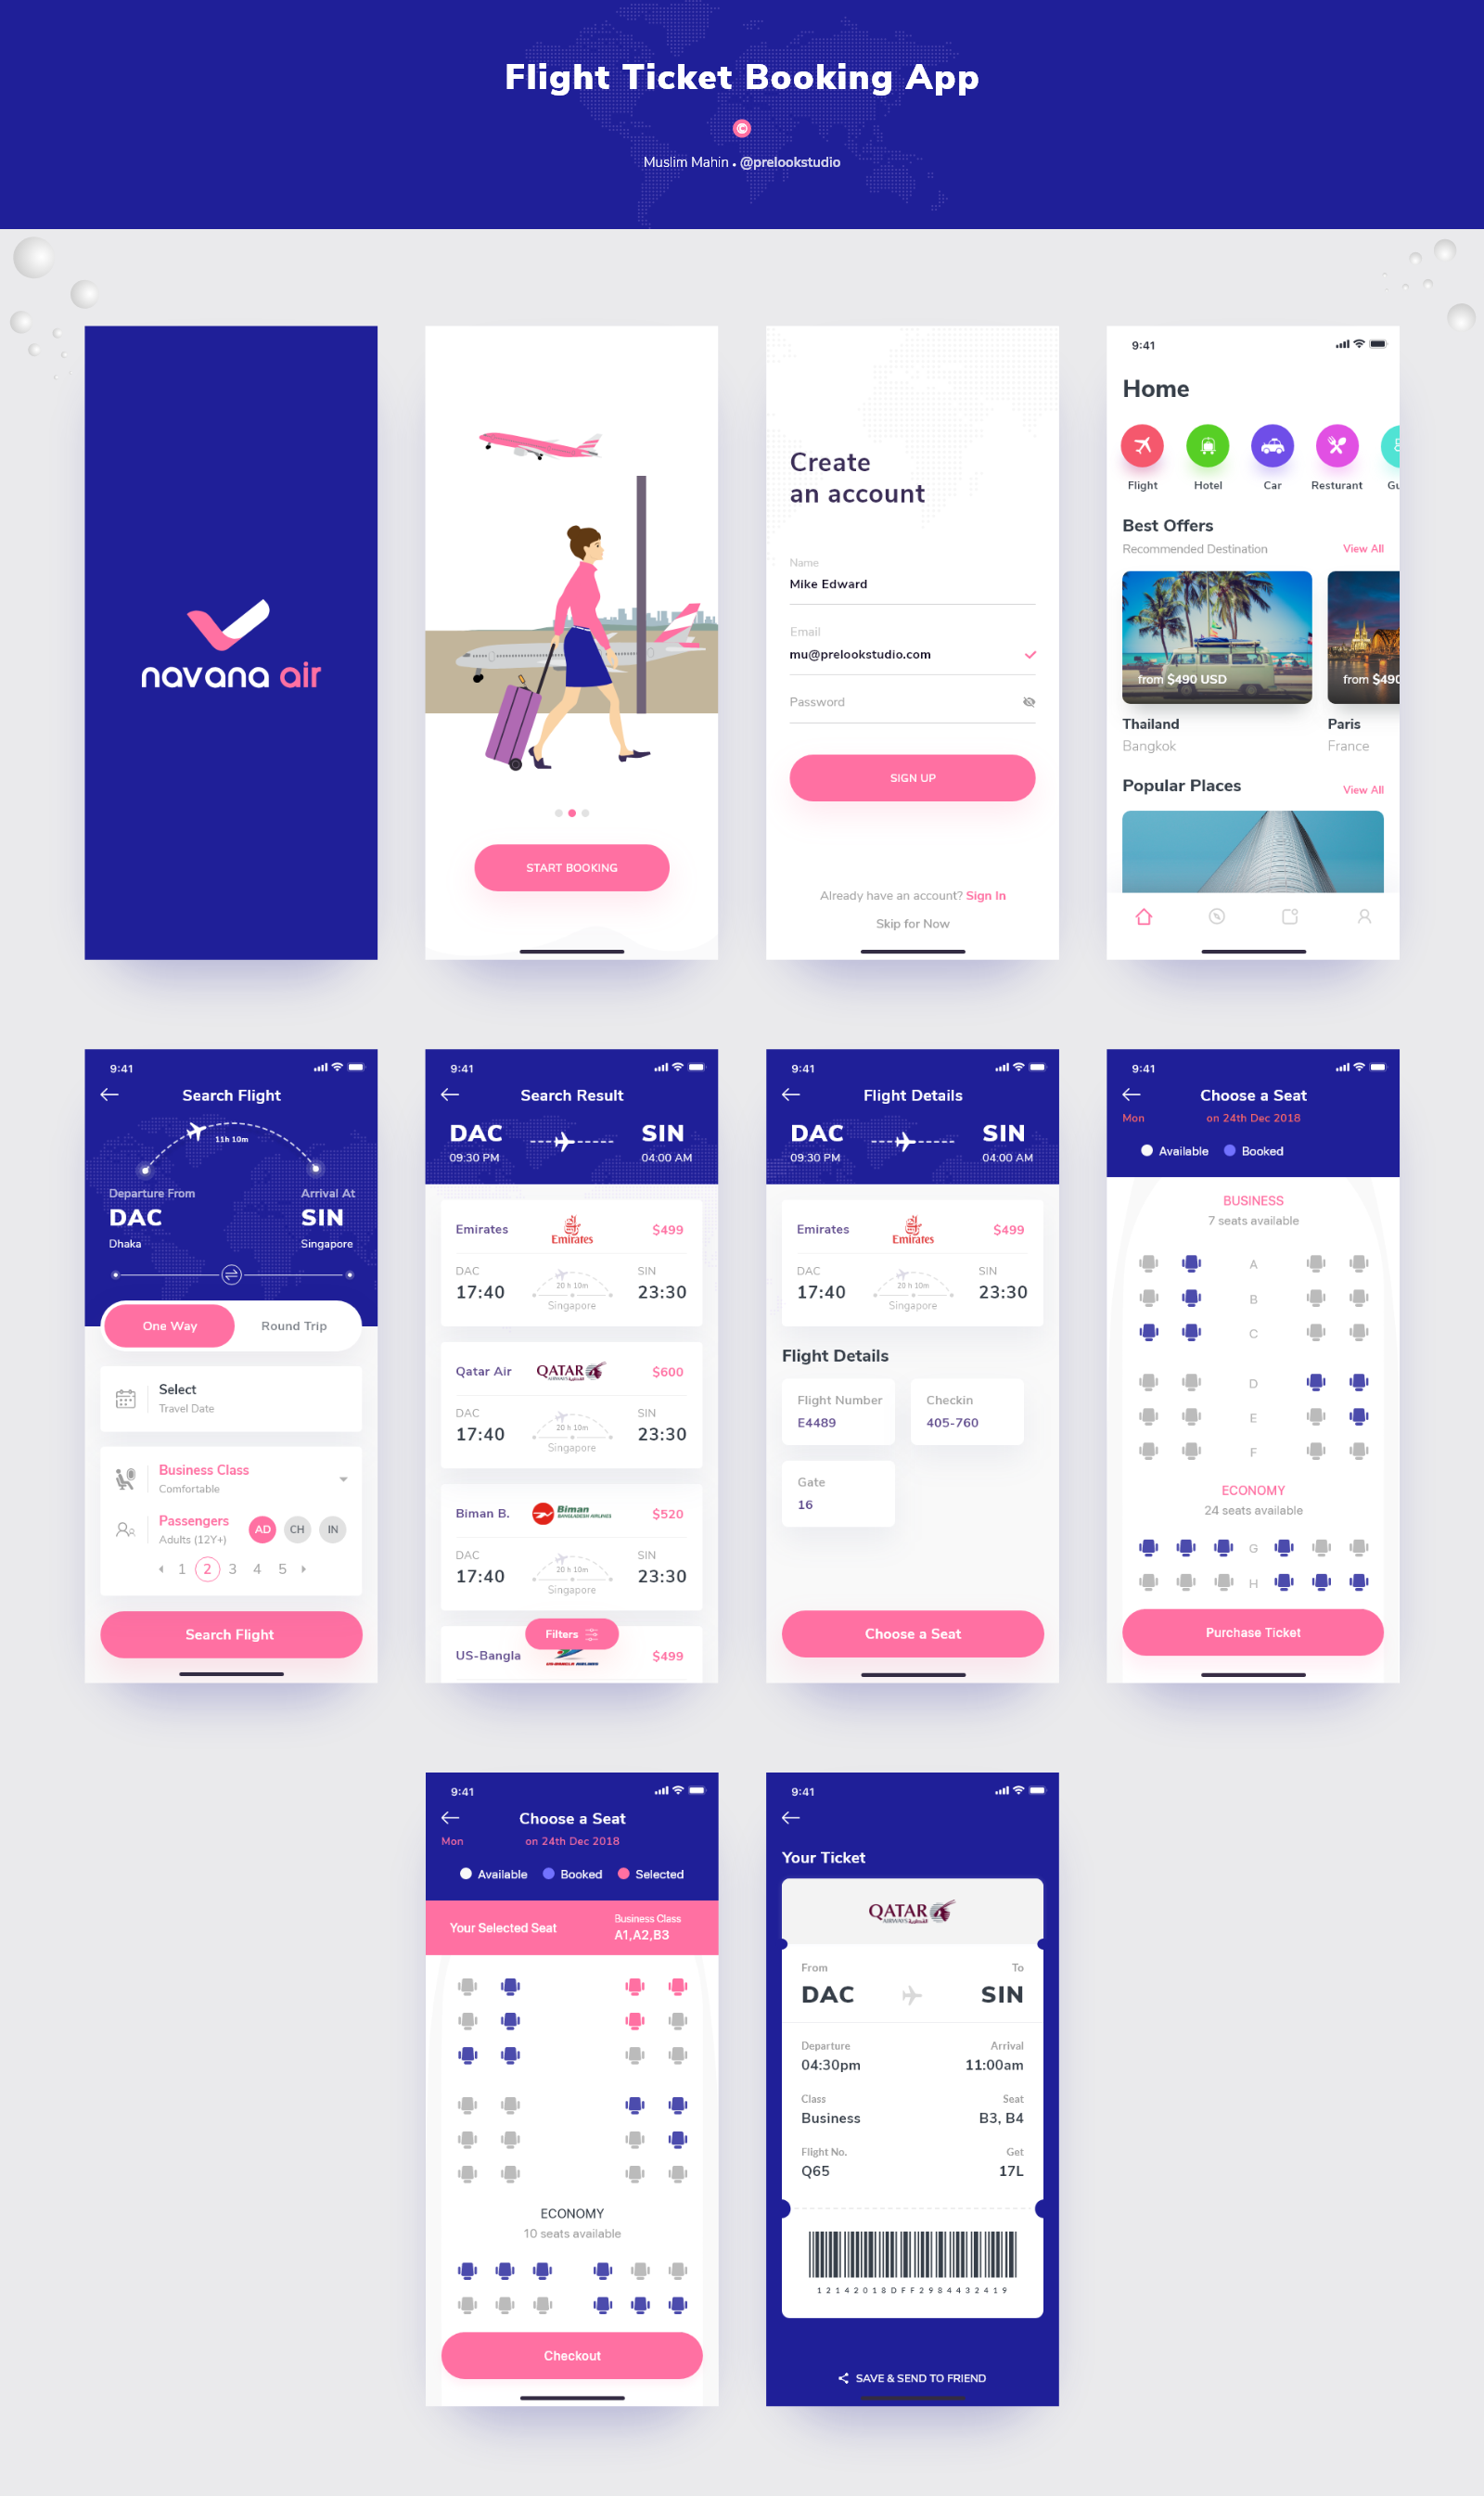 Flight ticket booking app preview